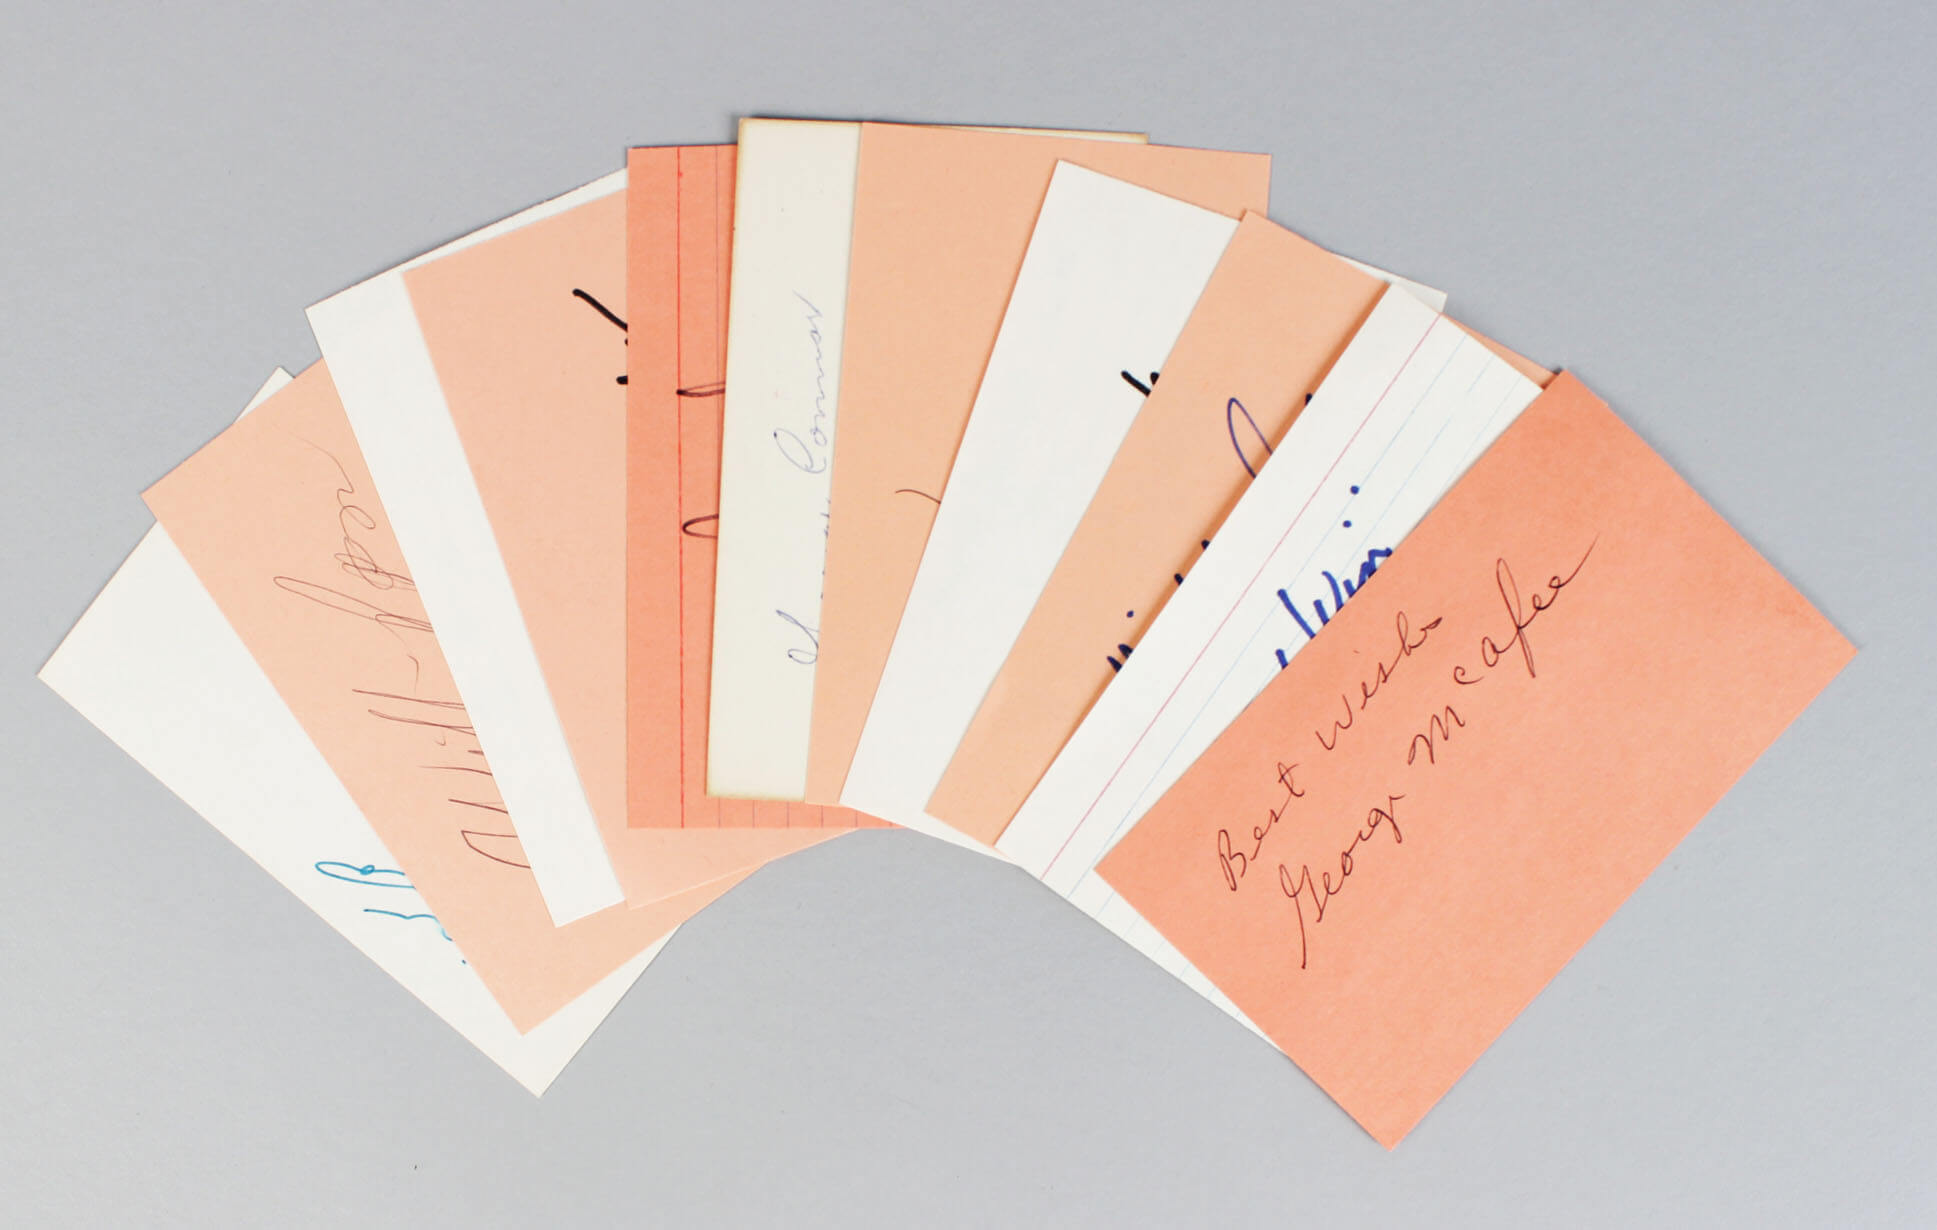 Chicago Bears Signed 3x5 Index Cards Lot (10) - Bronko Nagurski, Mike Ditka, George Blanda etc. (JSA)